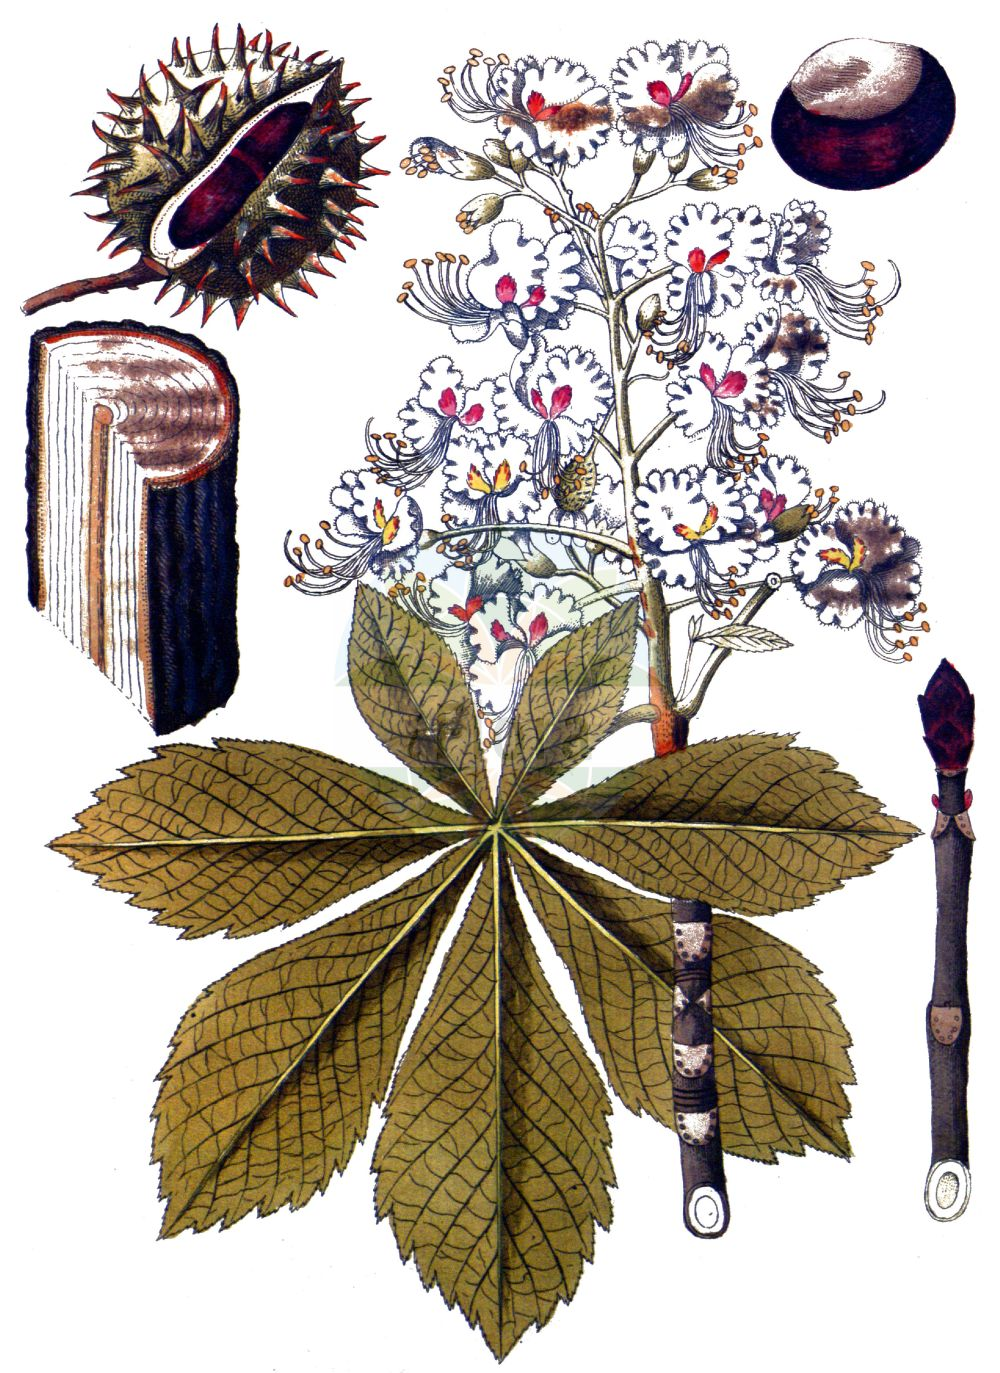 Historische Abbildung von Aesculus hippocastanum (Gewoehnliche Rosskastanie - Horse-chestnut). Das Bild zeigt Blatt, Bluete, Frucht und Same. ---- Historical Drawing of Aesculus hippocastanum (Gewoehnliche Rosskastanie - Horse-chestnut).The image is showing leaf, flower, fruit and seed.(Aesculus hippocastanum,Gewoehnliche Rosskastanie,Horse-chestnut,Aesculus hippocastanum,Gewoehnliche Rosskastanie,Balkan-Rosskastanie,Europaeische Rosskastanie,Weisse Rosskastanie,Horse-chestnut,Common Horse Chestnut,Aesculus,Rosskastanie,Horse-chestnut,Sapindaceae,Seifenbaumgewaechse,Soapberry family,Blatt,Bluete,Frucht,Same,leaf,flower,fruit,seed,Vietz (1800-1822))